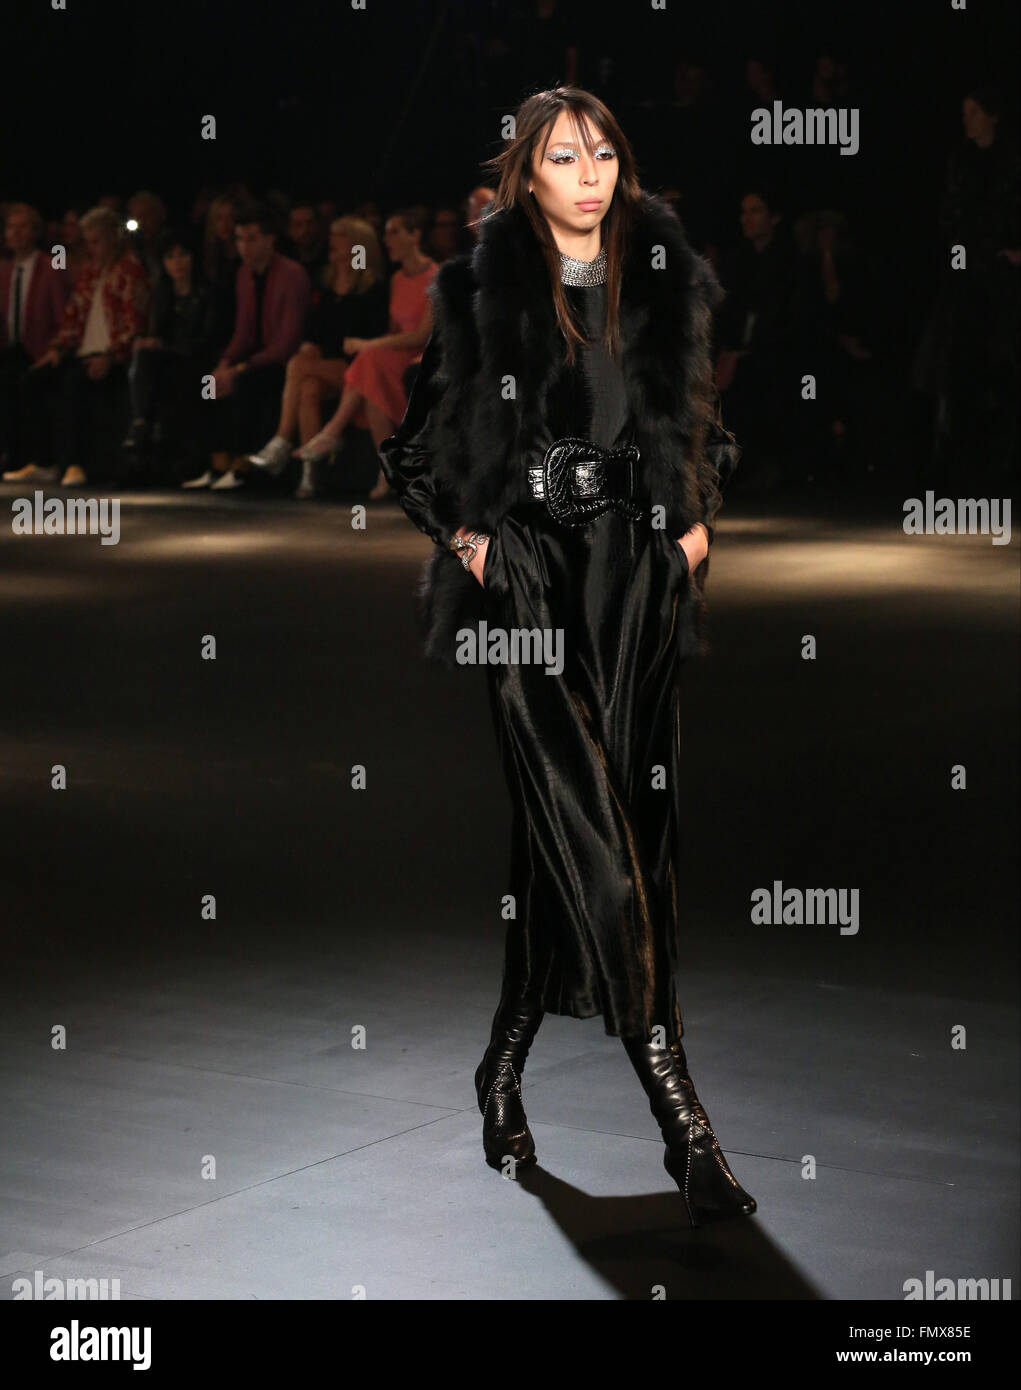 ae726d74 Saint Laurent at Hollywood Palladium - Fashion Show Featuring: Model Where: Los  Angeles, California, United States When: 10 Feb 2016